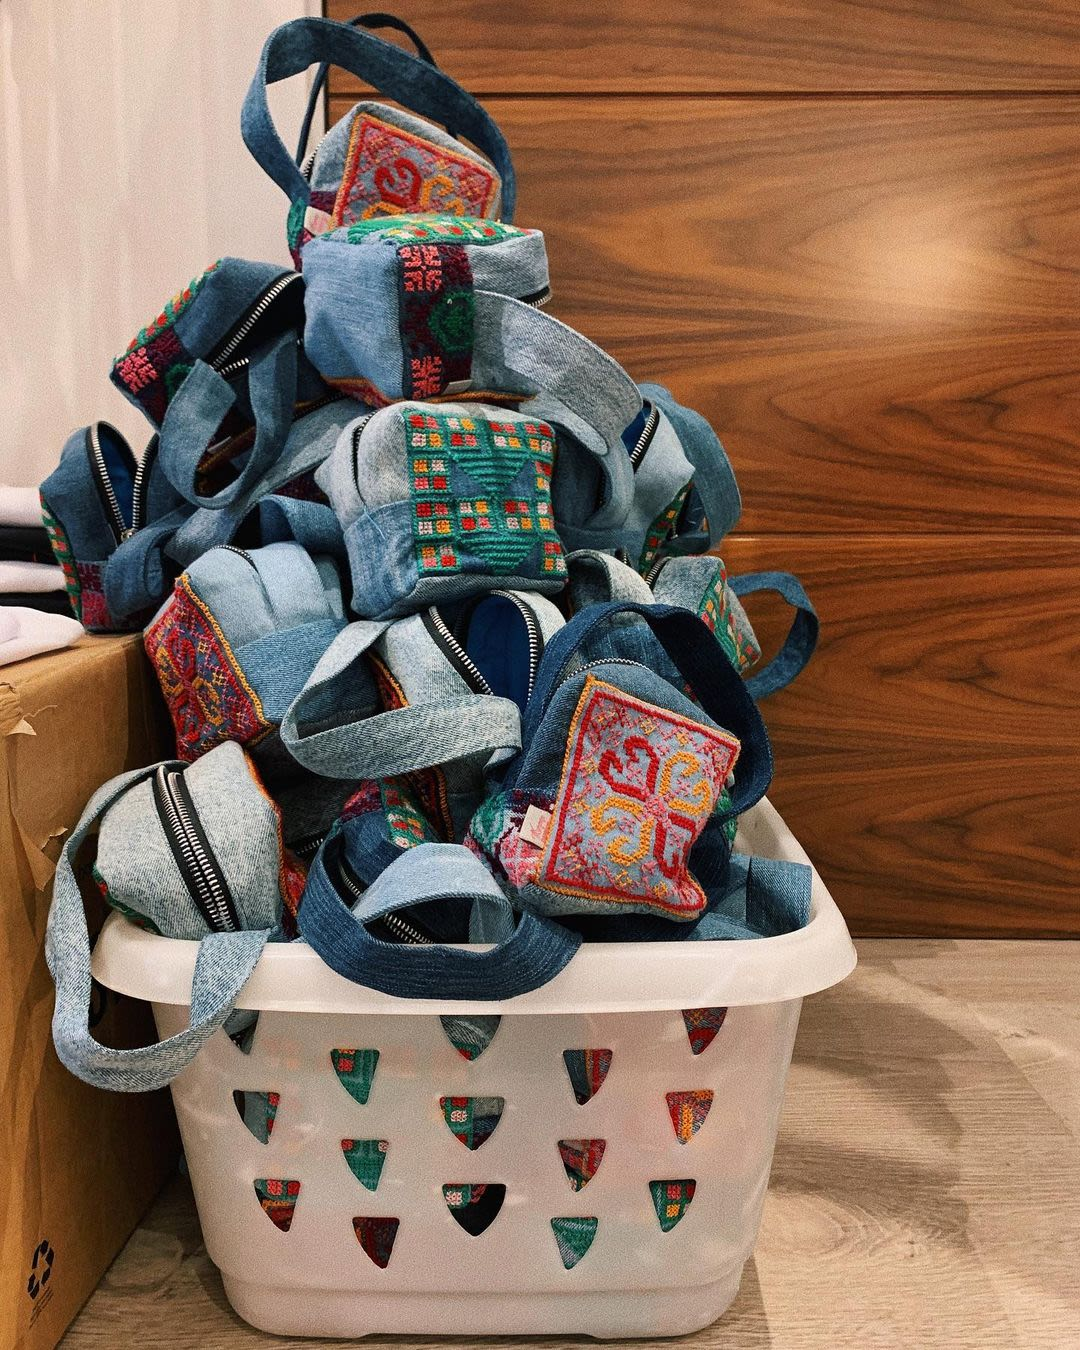 Denim bags stacked in a basket